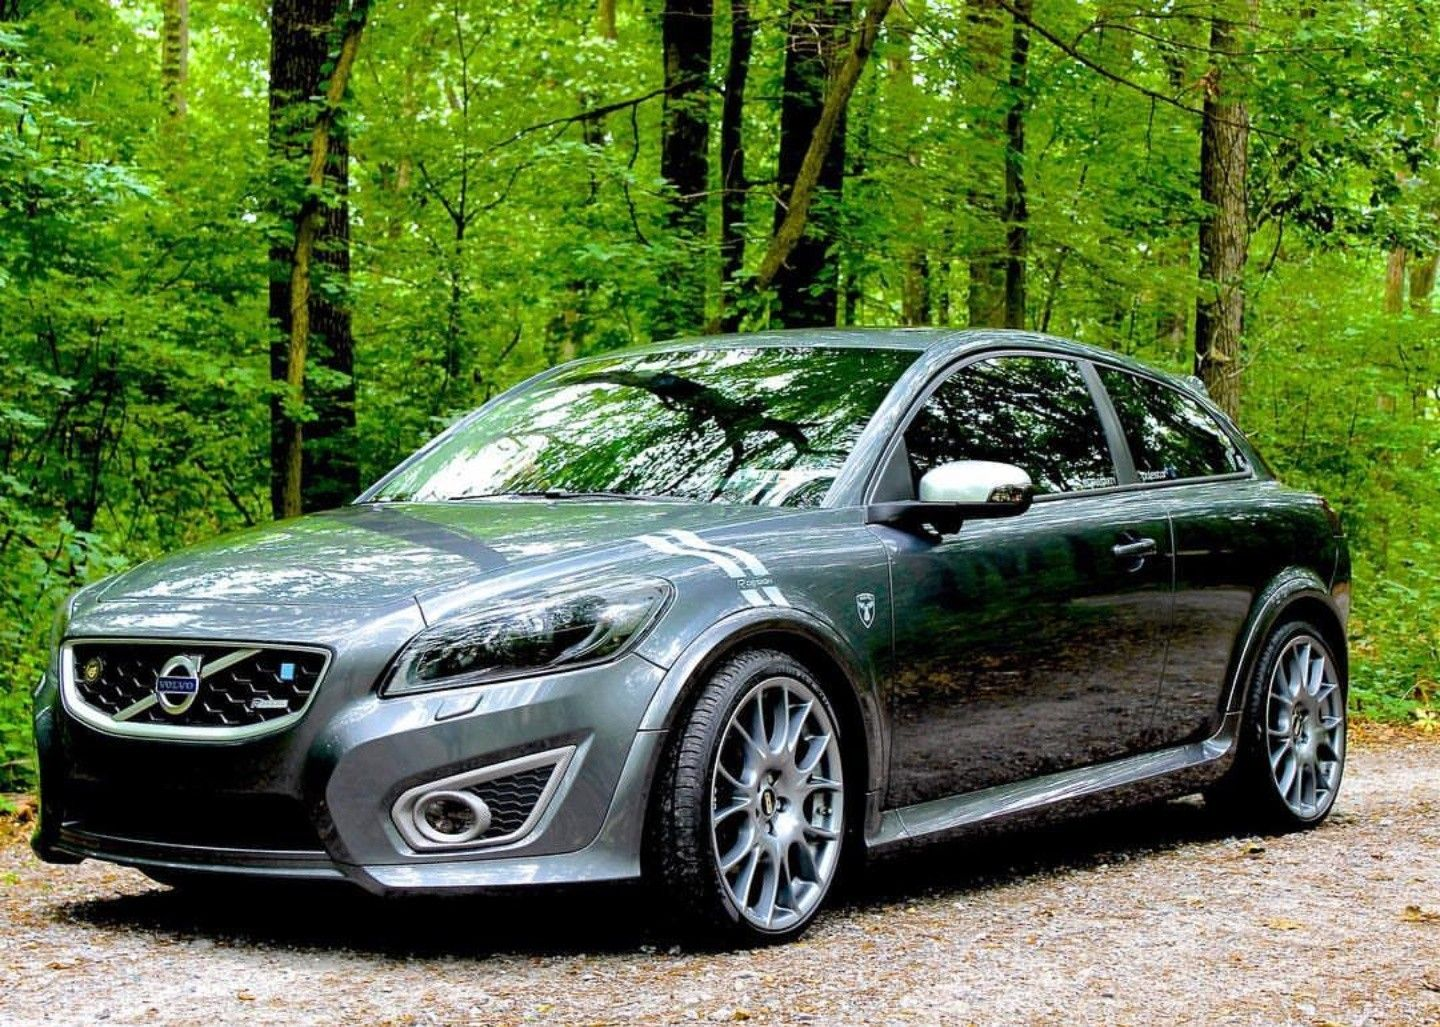 Pin By Lady Valkyrie On Subie Trix Volvo C30 Volvo Volvo Cars